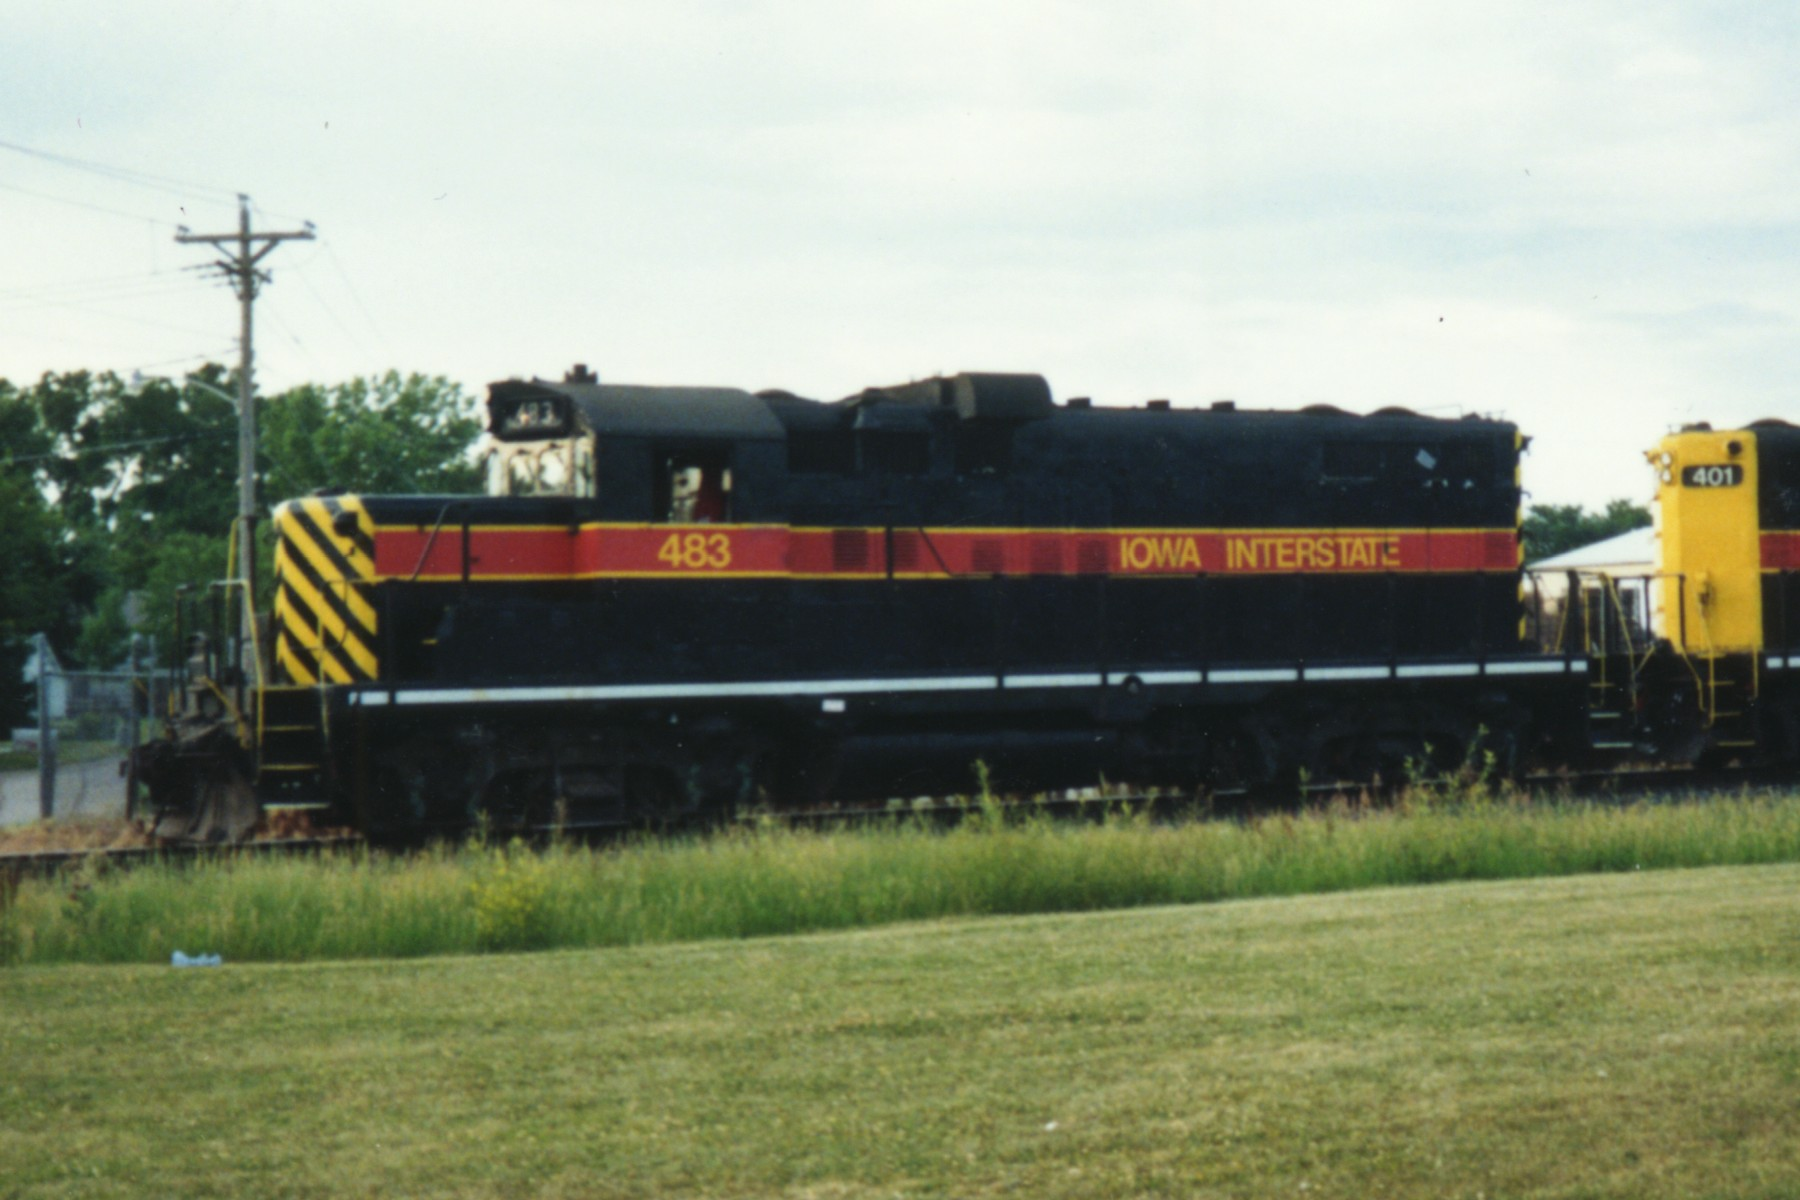 IAIS 483 at Altoona, IA on 01-Jun-1992